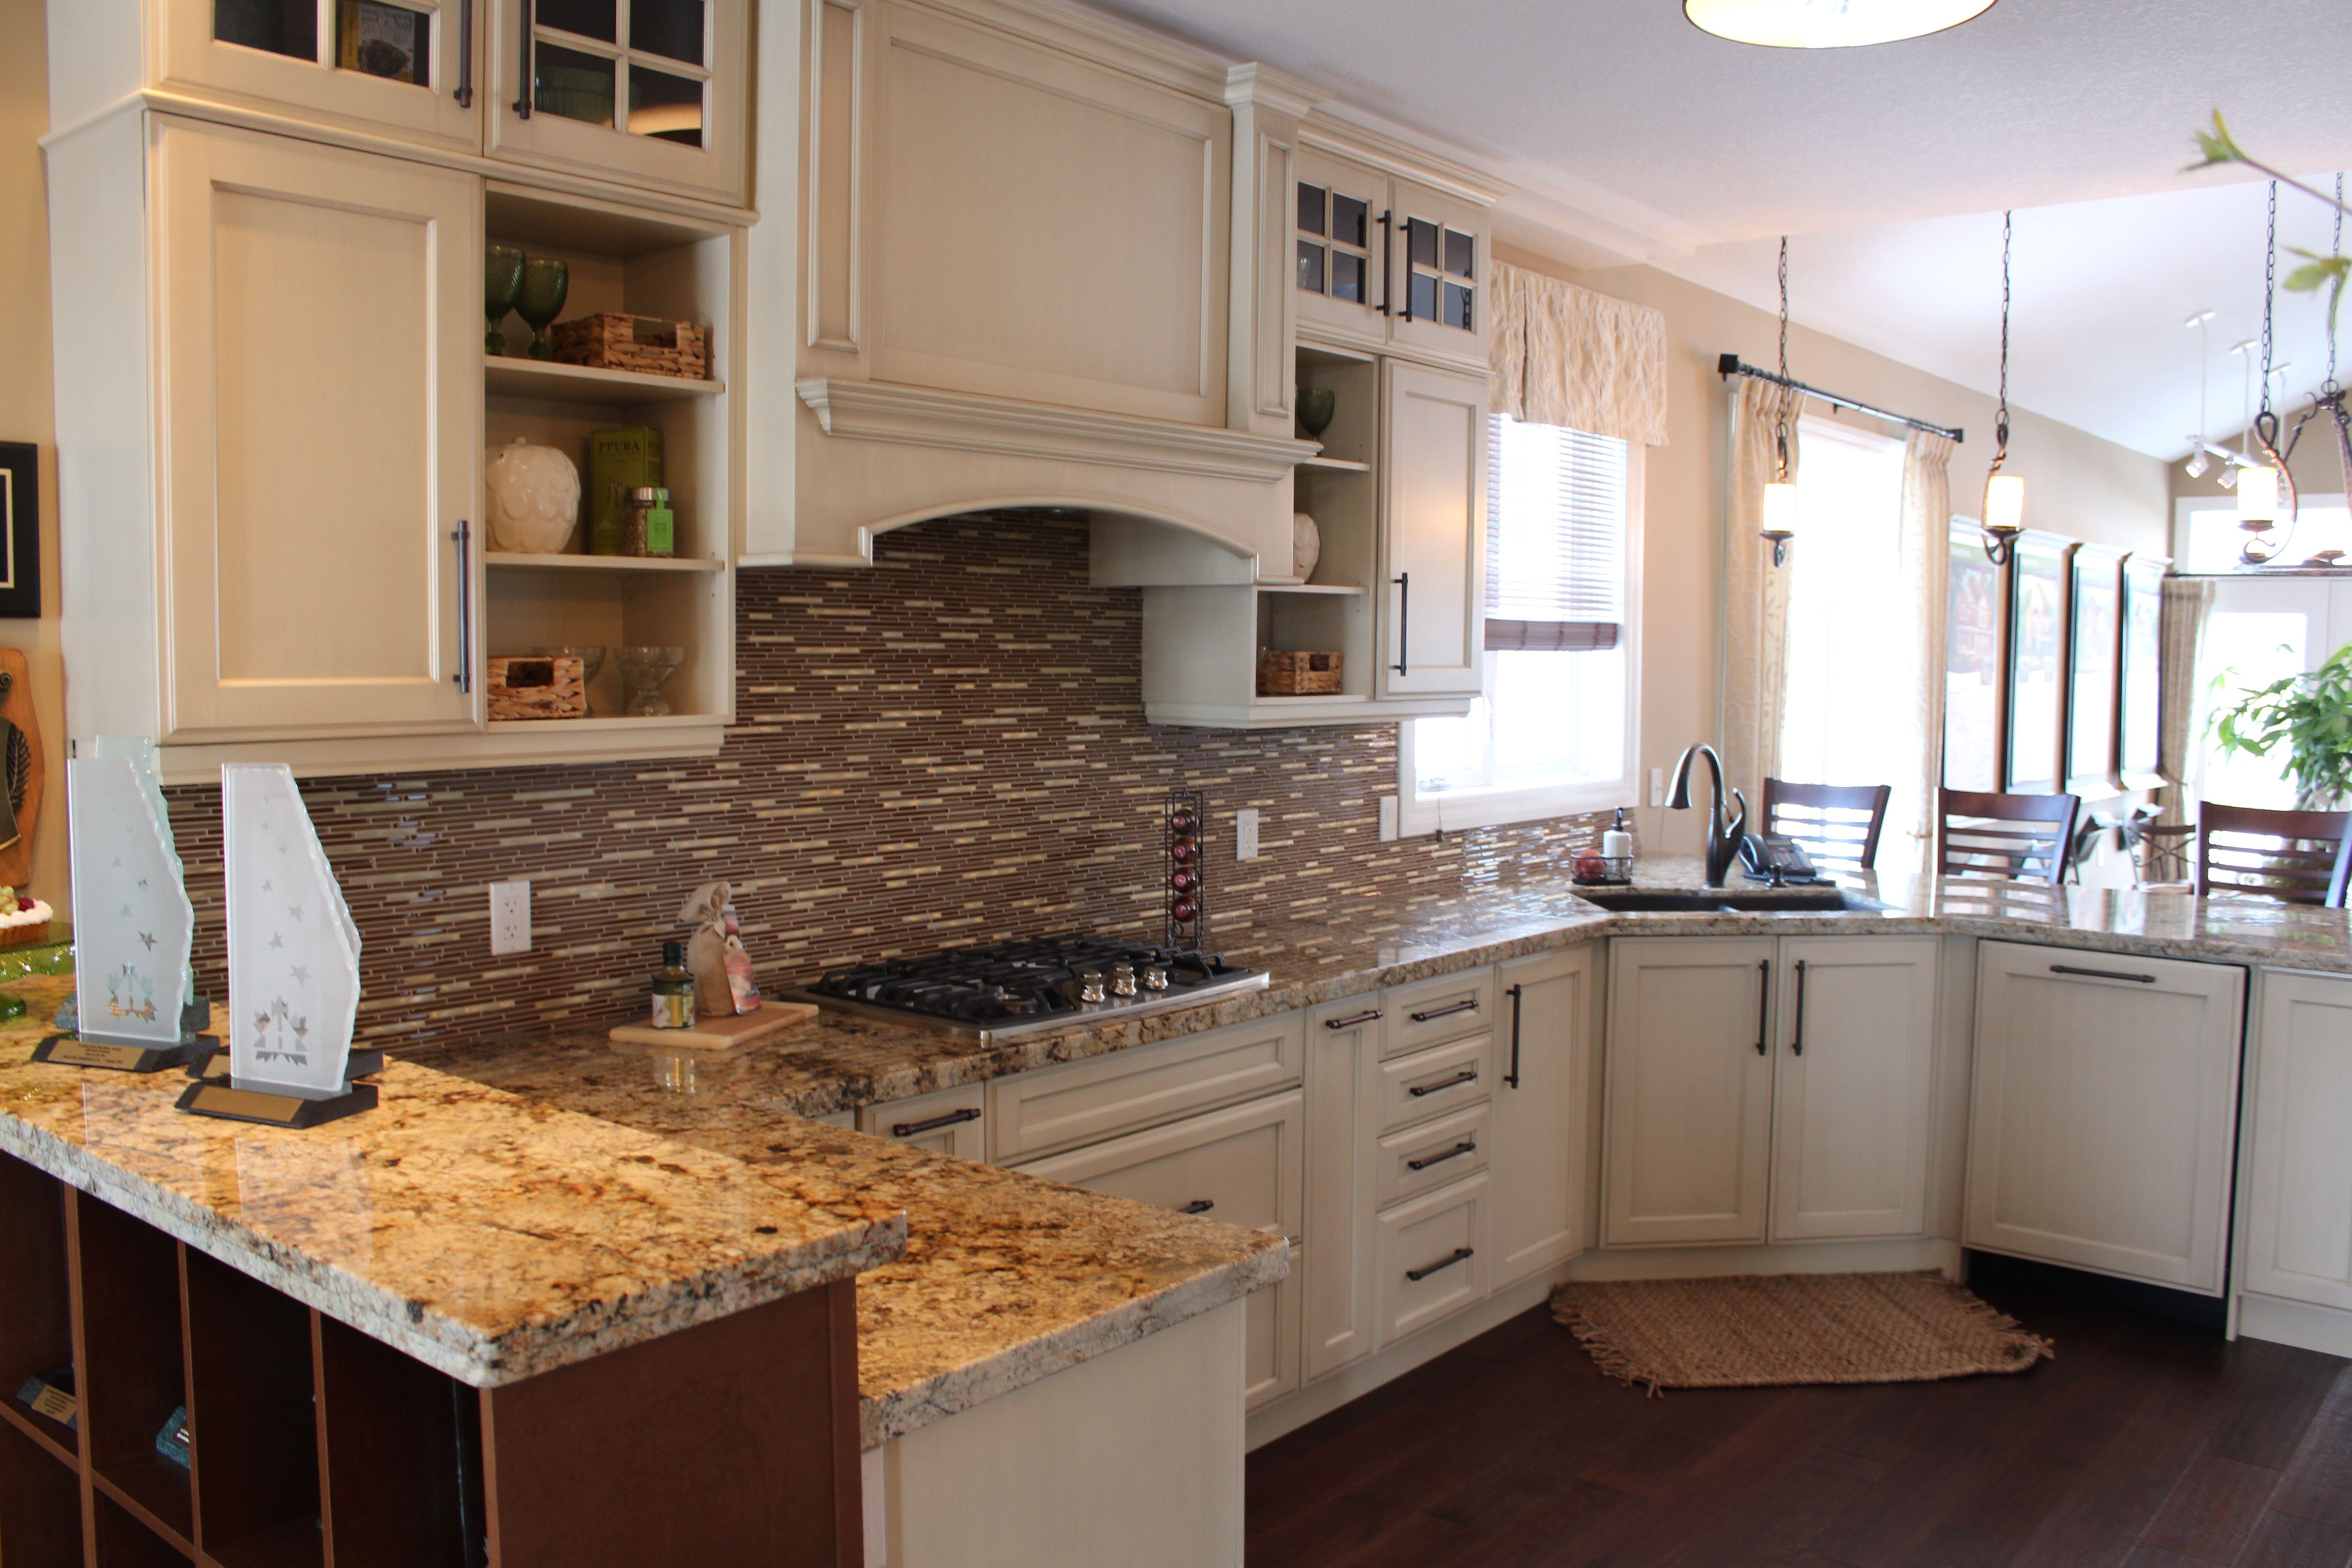 Kitchen Cabinets For 9 Foot Ceilings maple kitchen cabinets, cabinets in parchment with chocolate brush